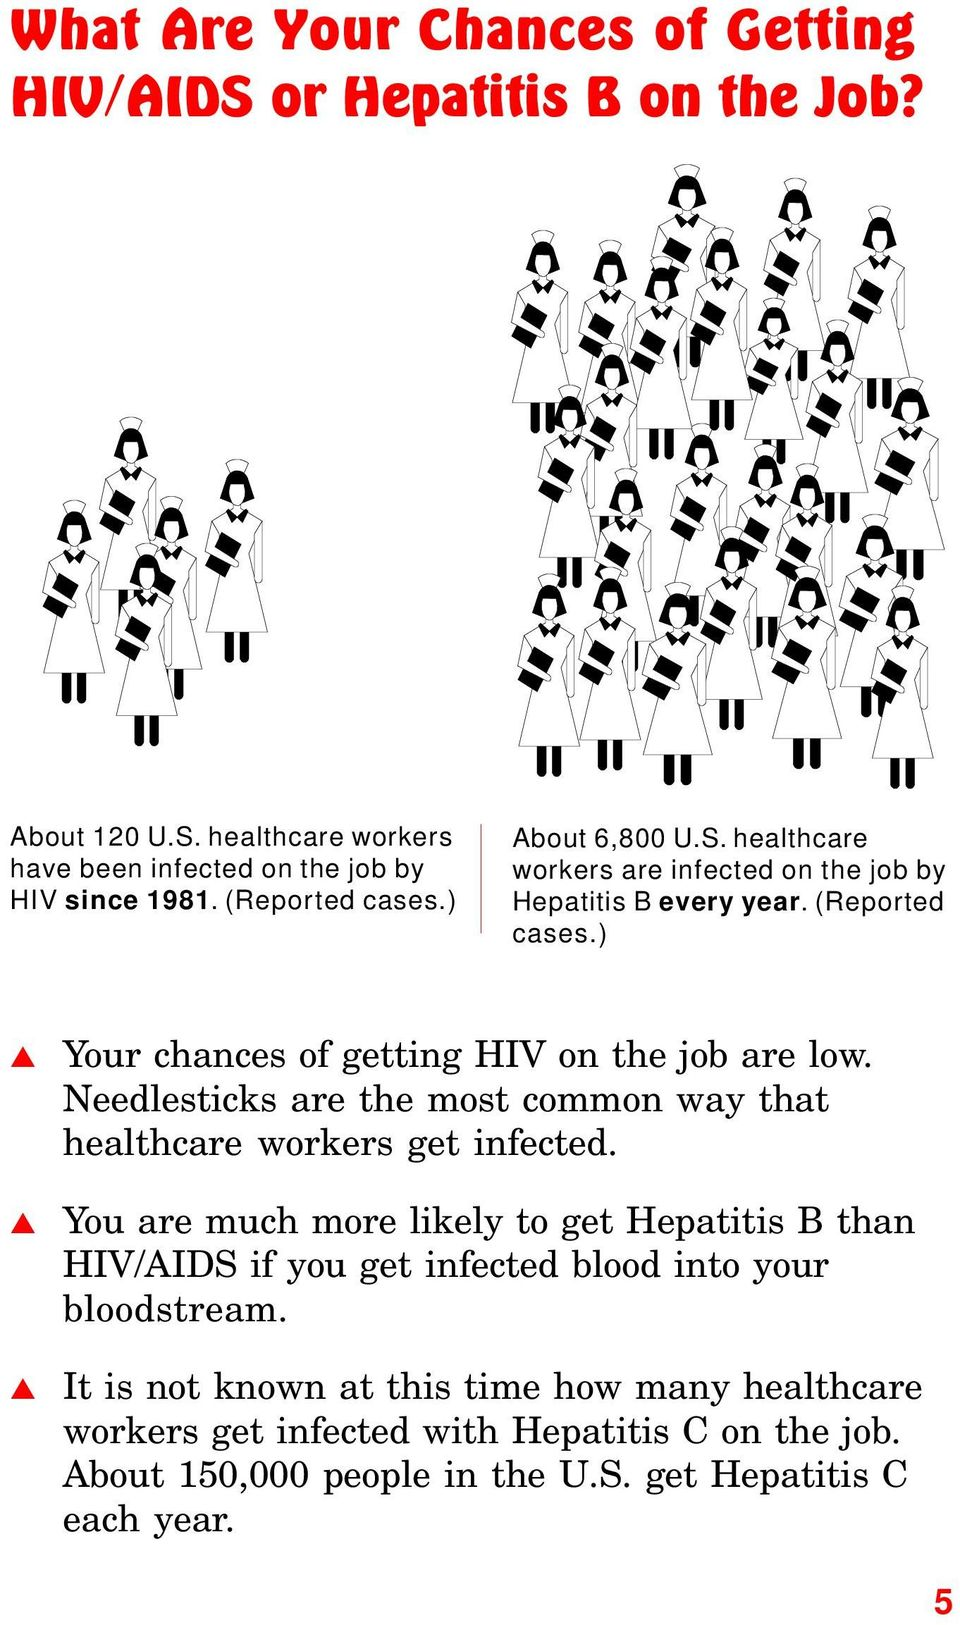 ) Your chances of getting HIV on the job are low. Needlesticks are the most common way that healthcare workers get infected.